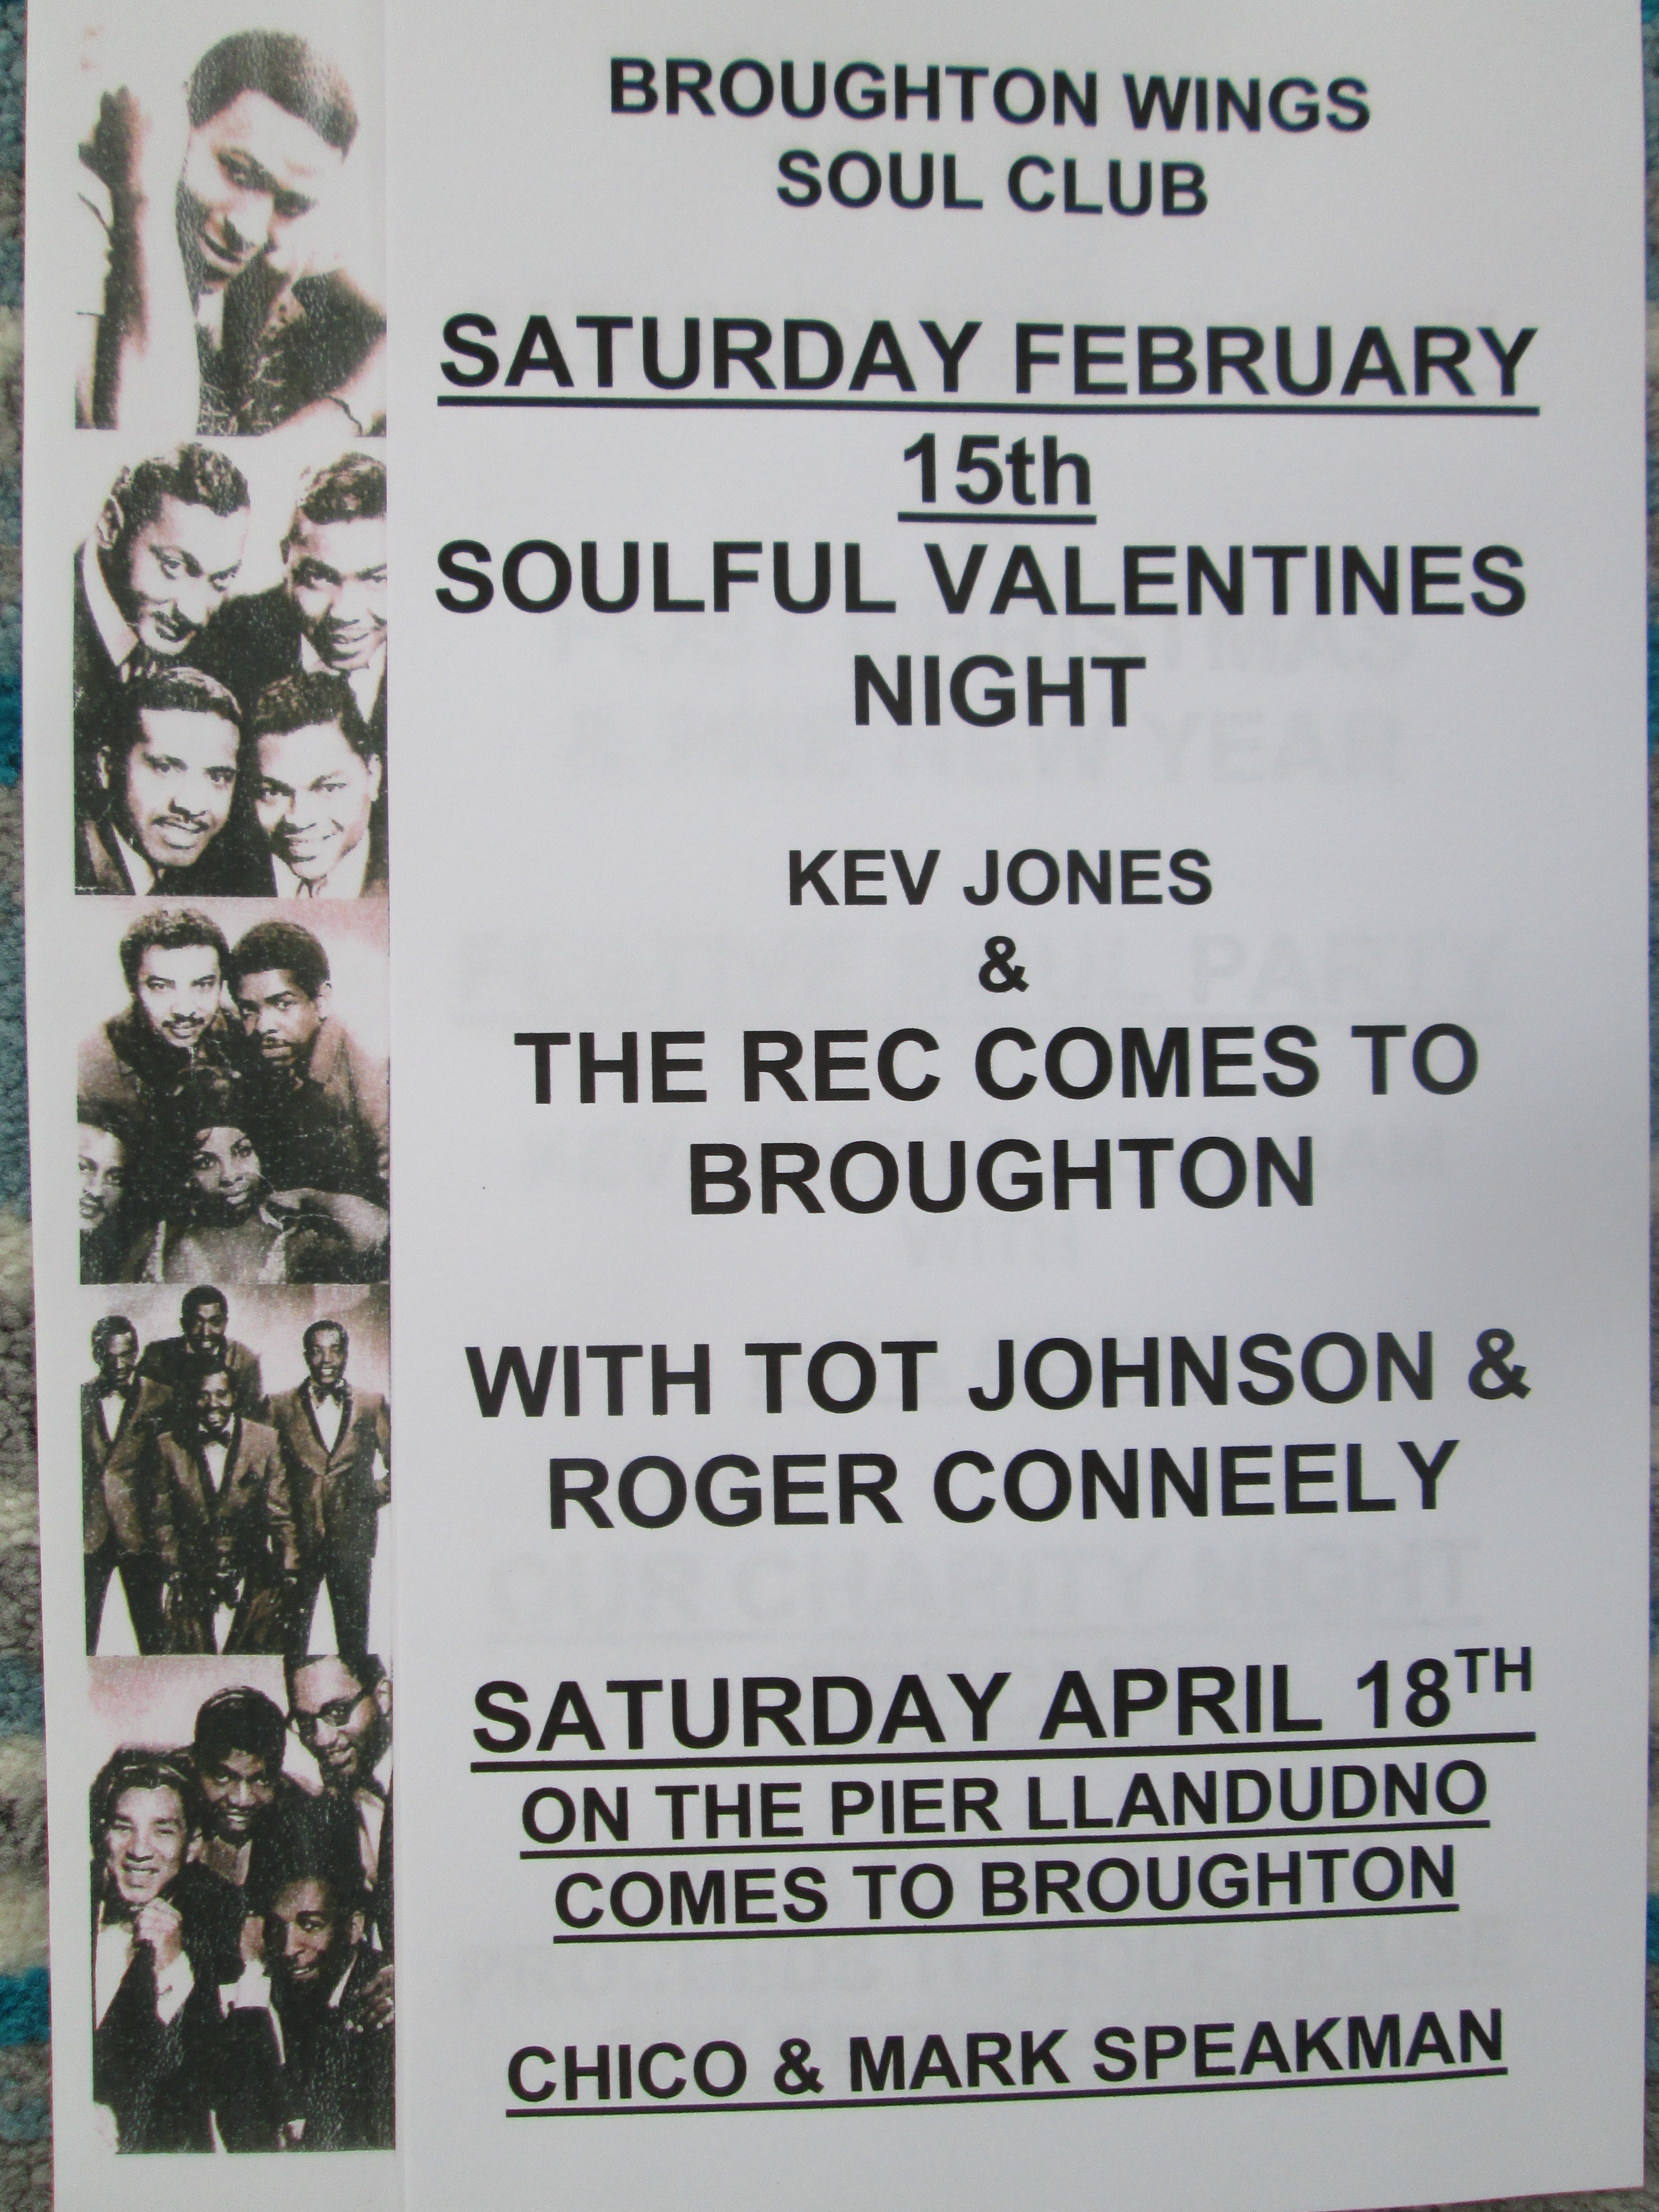 Soulful Valentines Night At Broughton Wings flyer